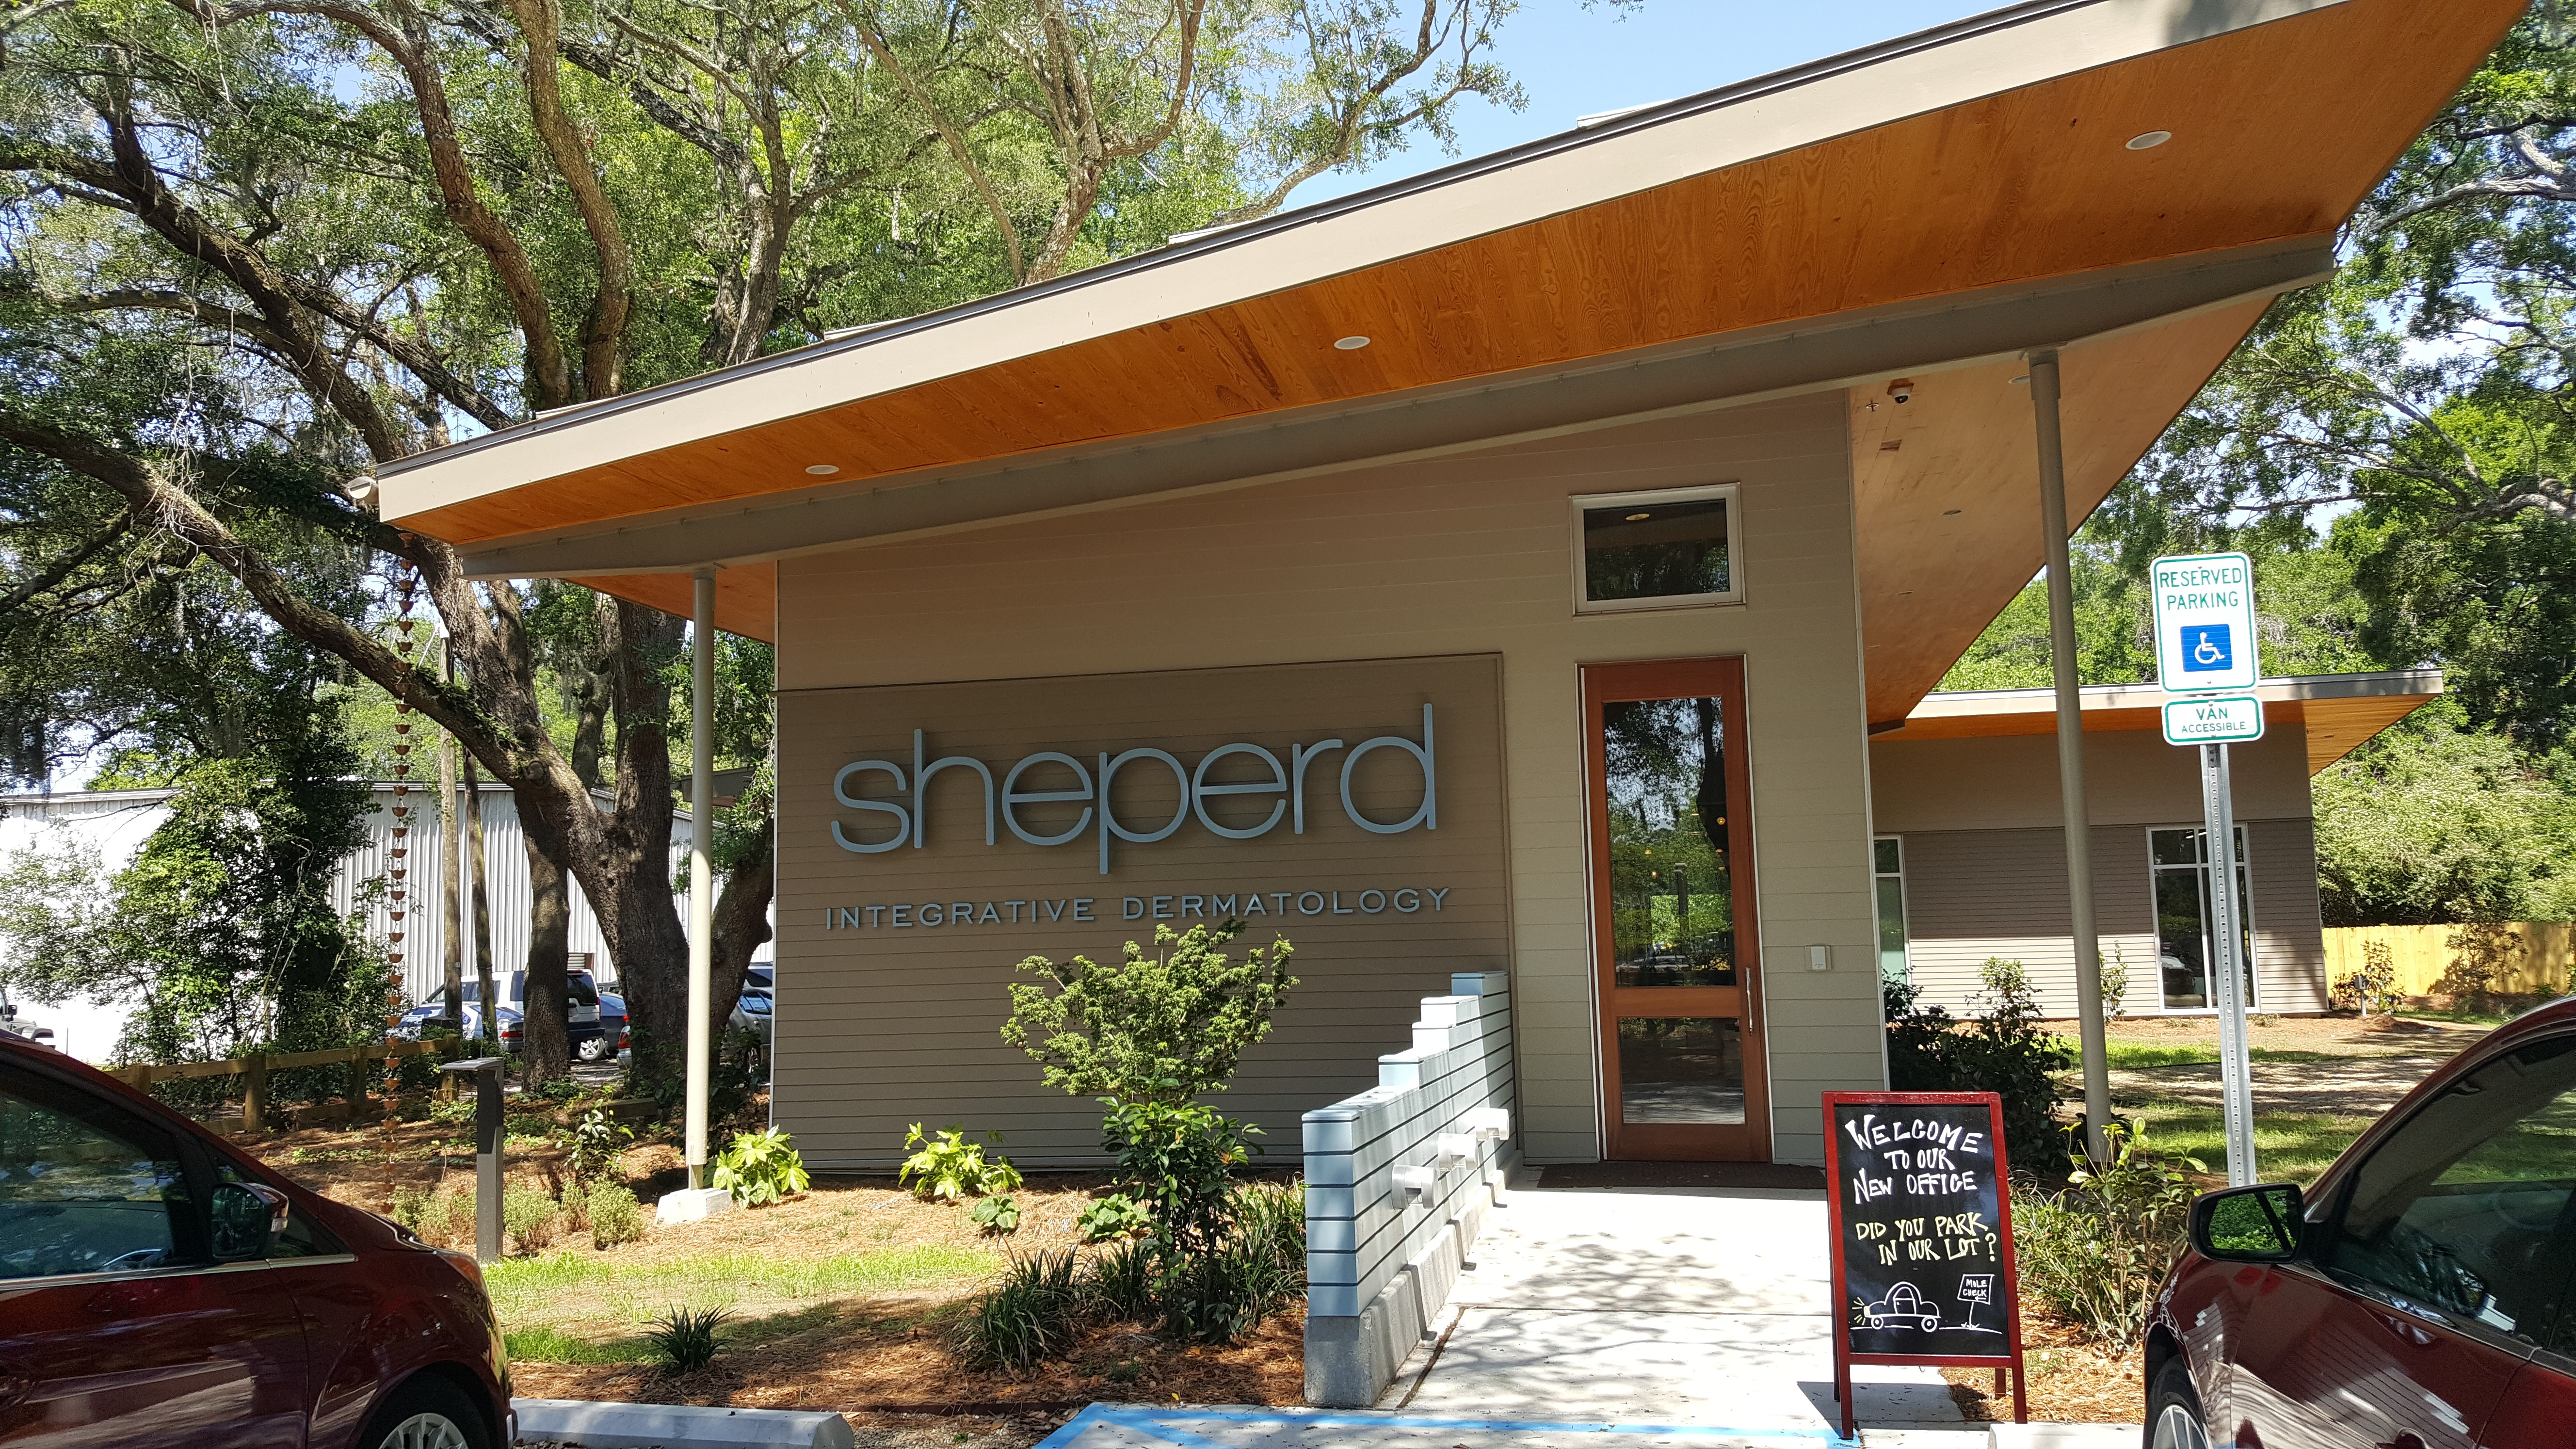 Transworld Inc. Electrical Contractors Completed Office for Shepherd Medical Dermatologist Mount Pleasant